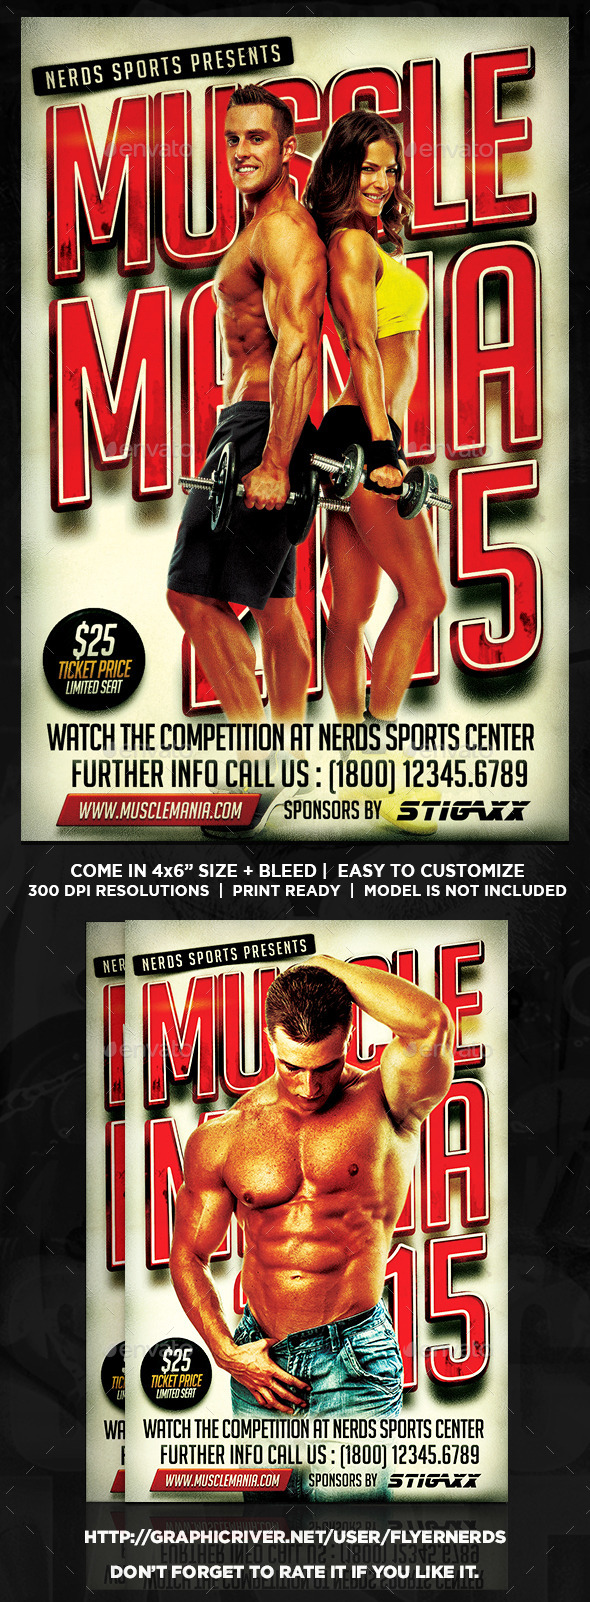 GraphicRiver Muscle Mania 2K15 Sports Flyer 9929227